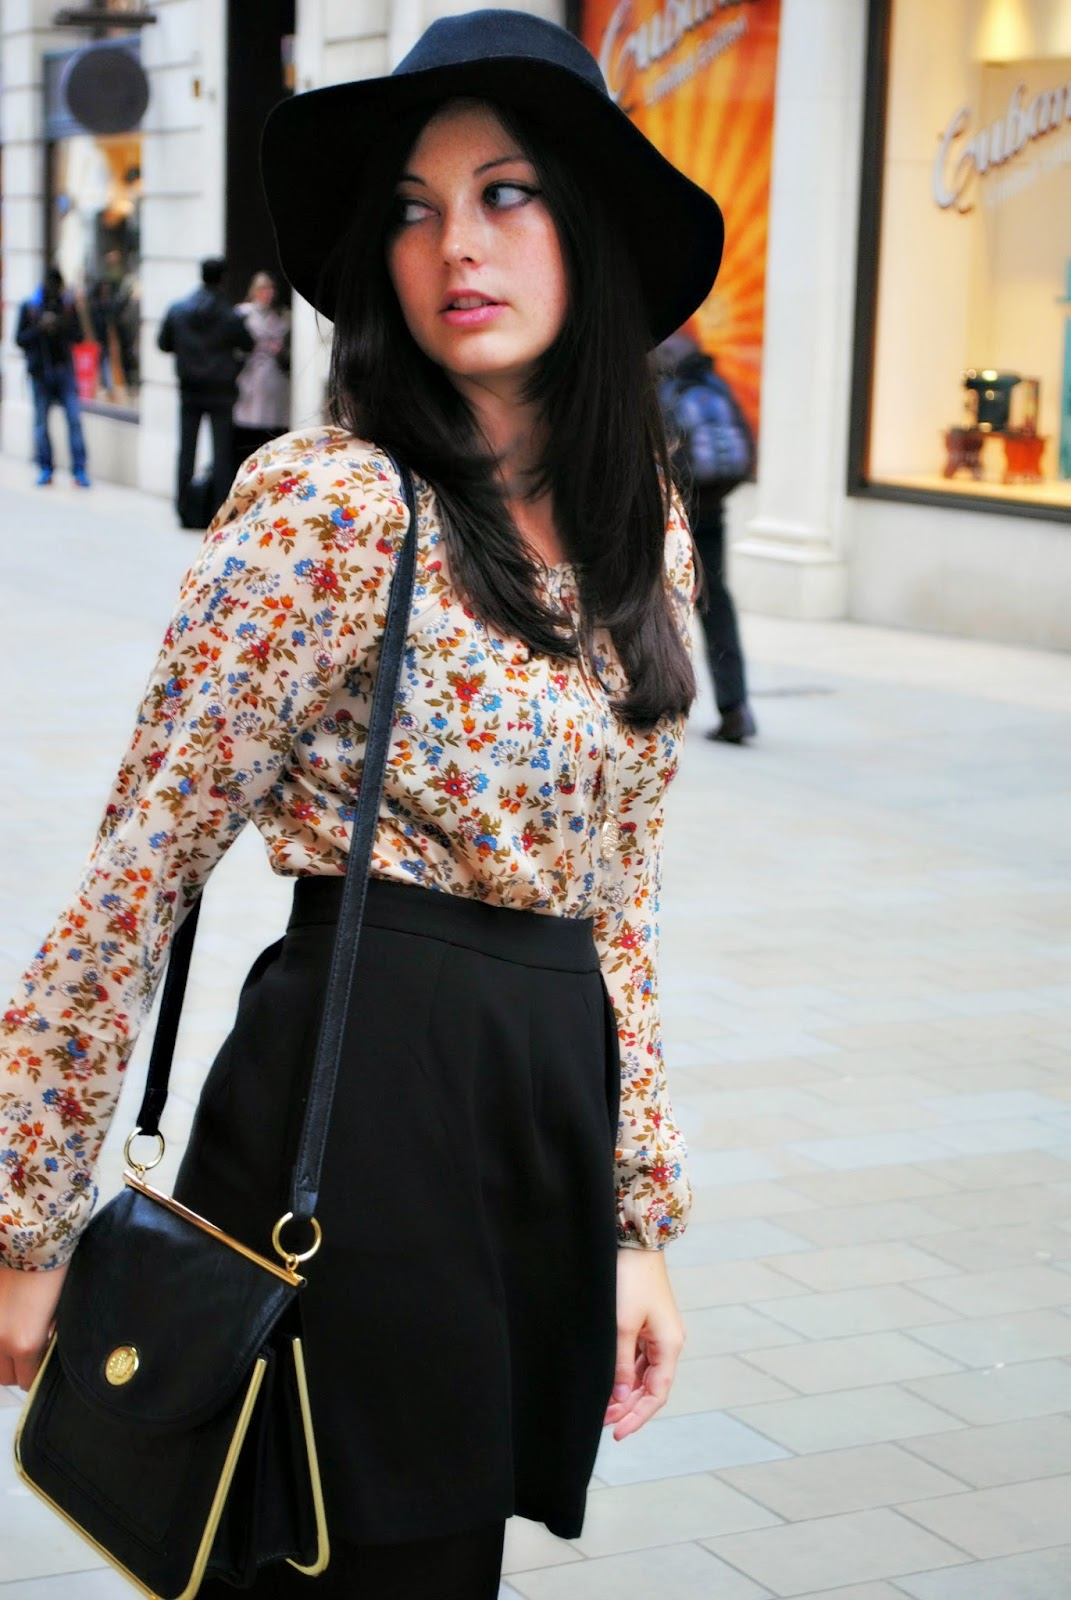 Stradivarius boho vintage blouse with black skater dress and necklace